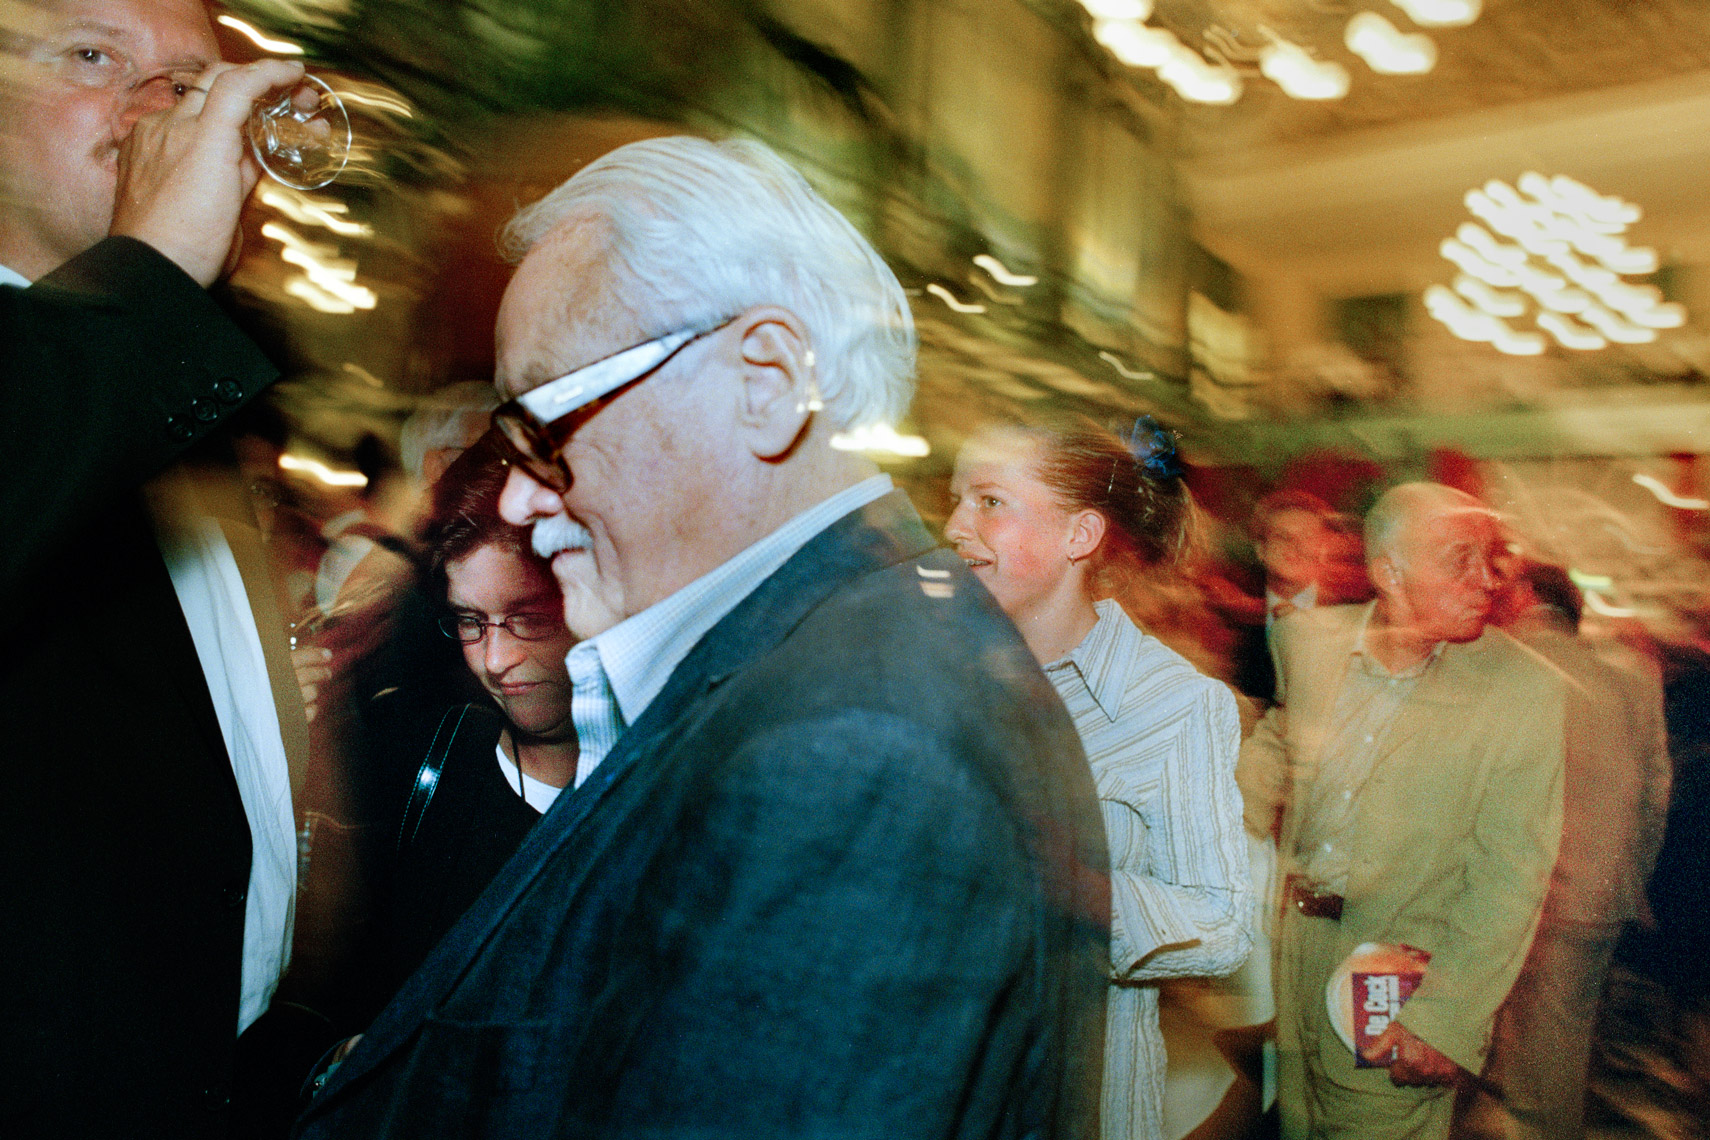 Toots Thielemans mingling with the audience after a performance at Grand Hotel Krasnapolsky in Amsterdam | Mike Harris Photography